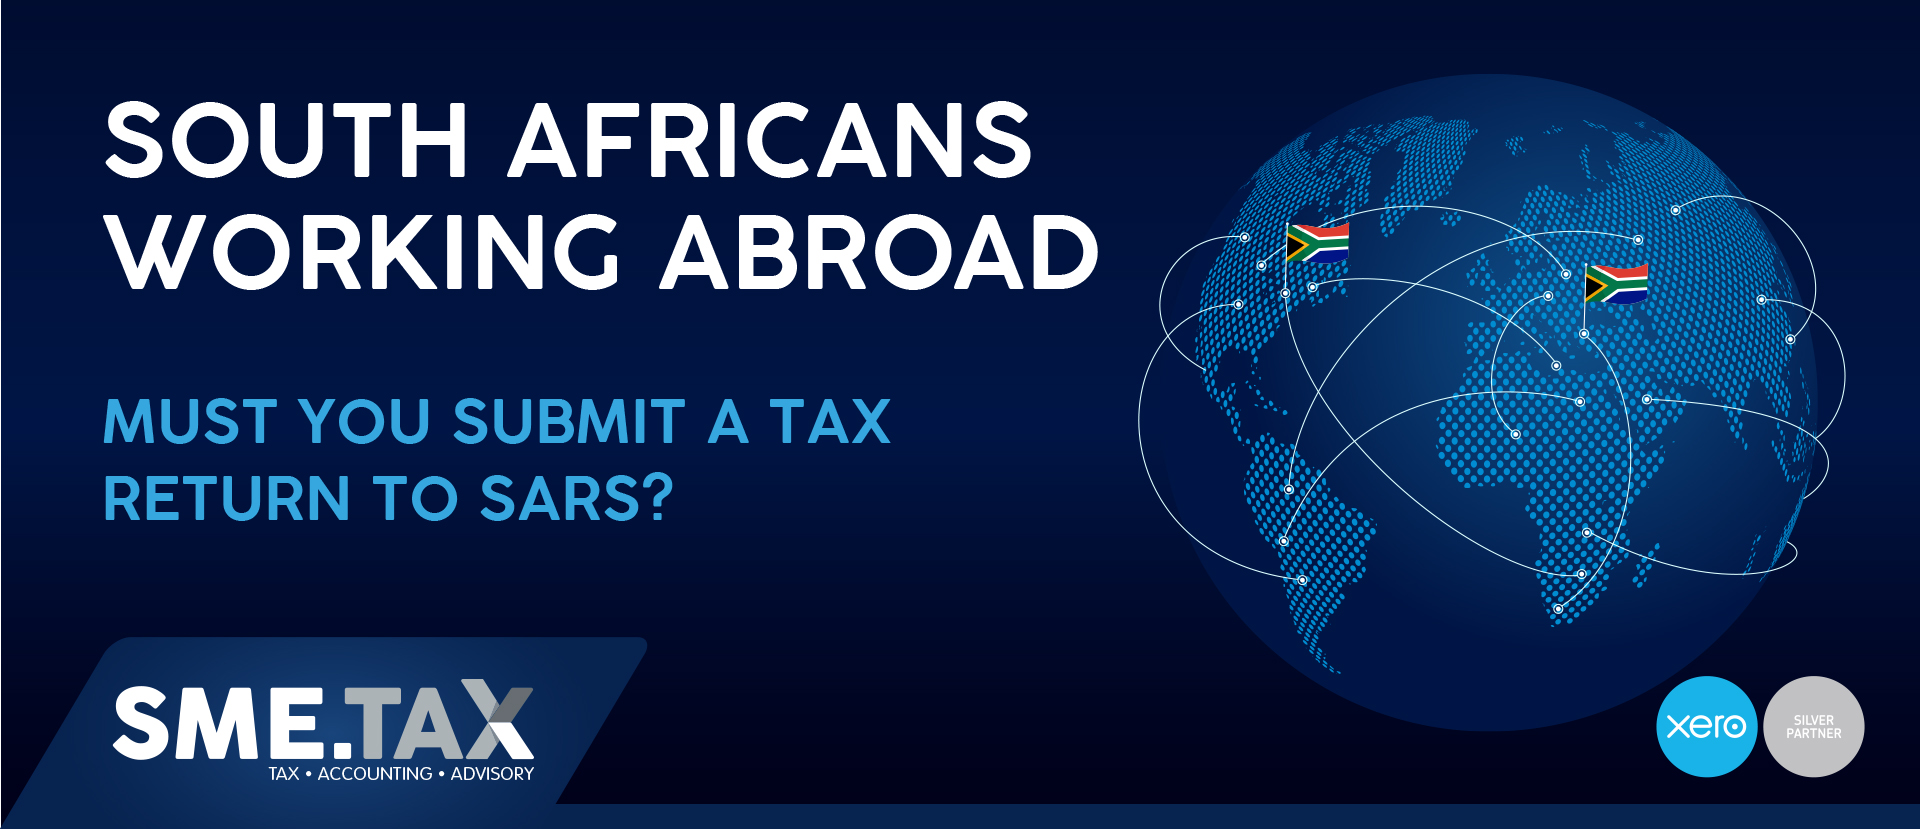 SOUTH AFRICANS WORKING ABROAD. Must you submit a tax return to SARS? 1